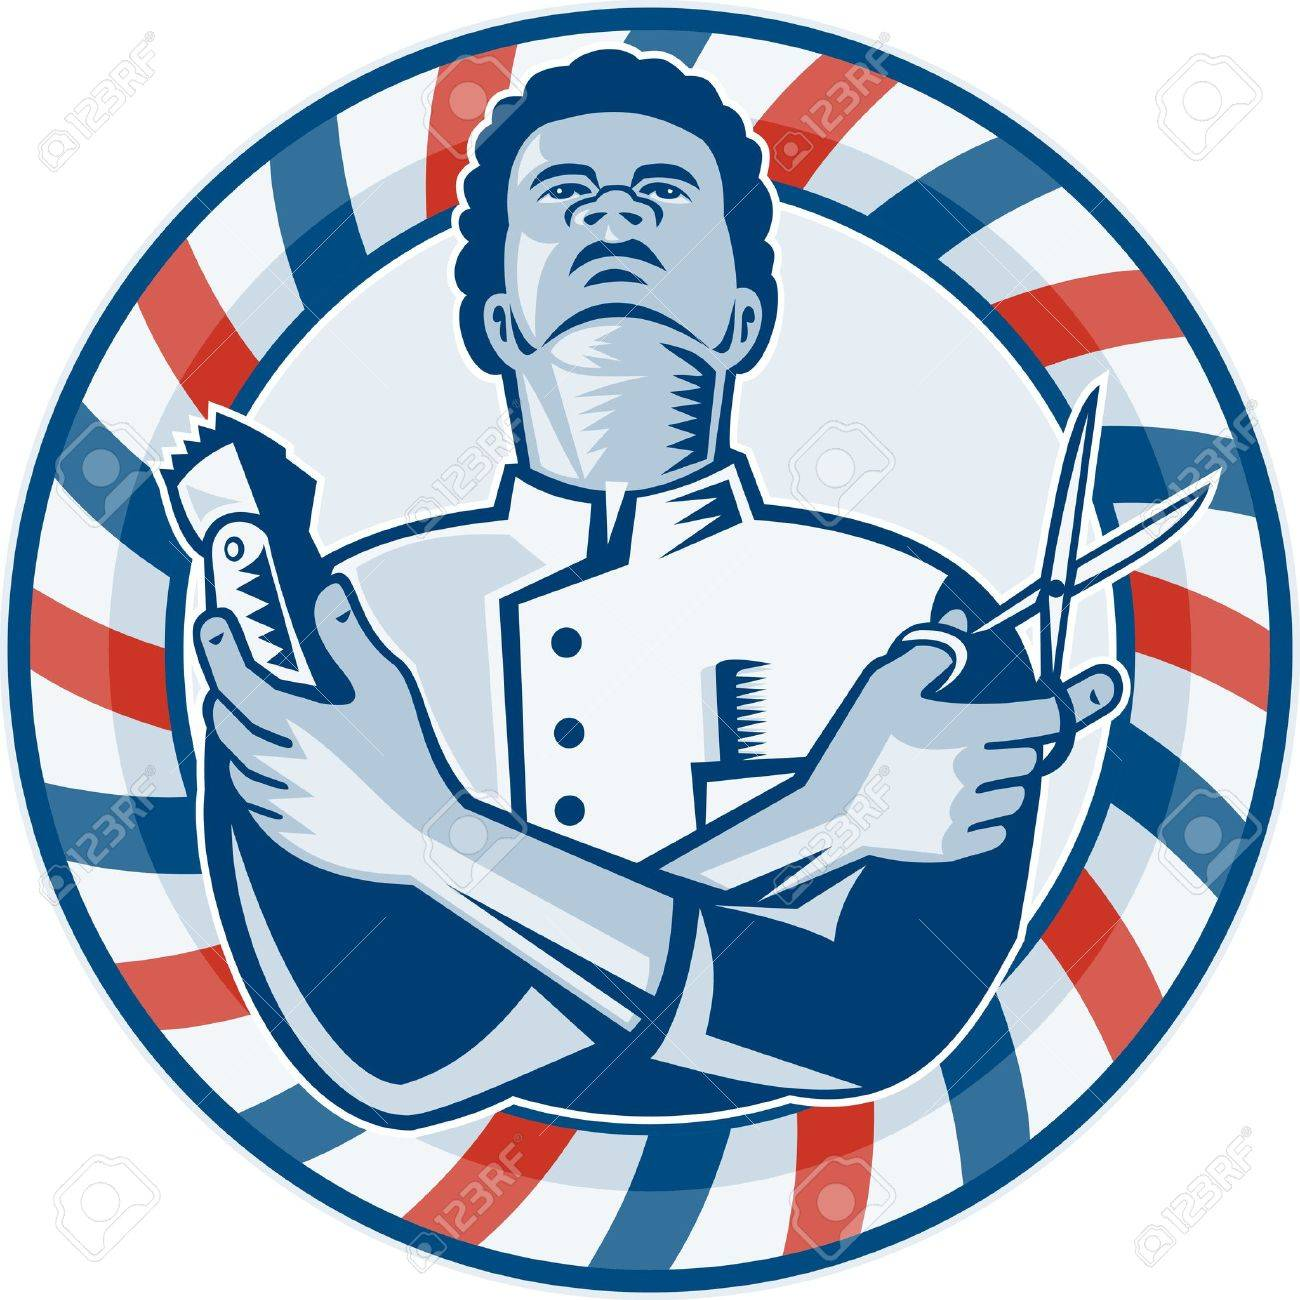 Clip art vector of vintage barber shop logo graphics and icon vector - Vector Similar Images Add To Likebox Barber Shop Illustration Of An African American Barber With Arms Crossed Holding A Hair Clipper